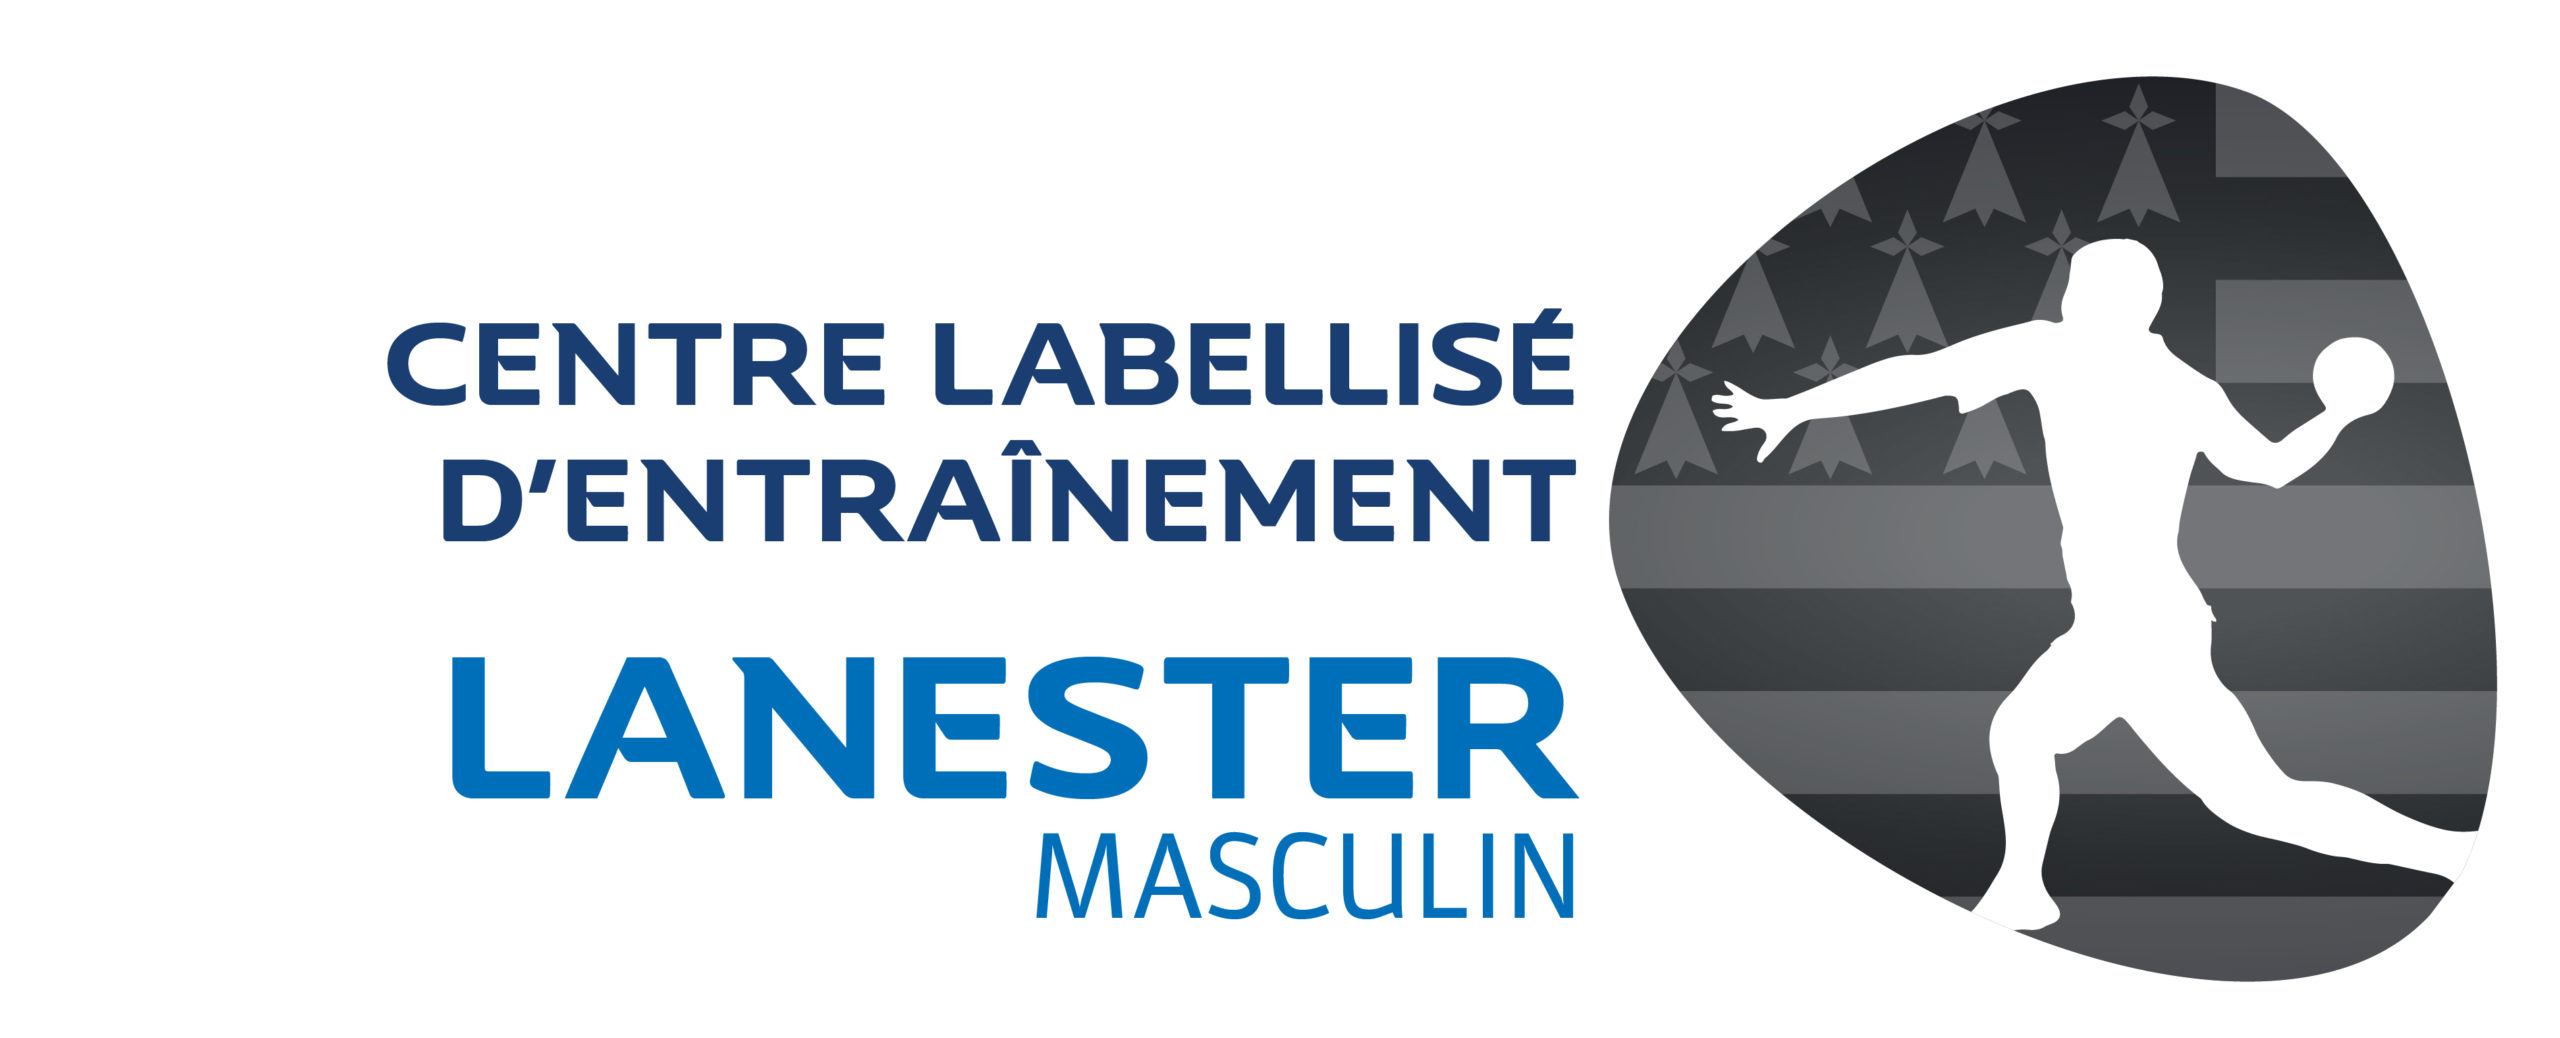 CLE_MASCULIN_LANESTER_RVB